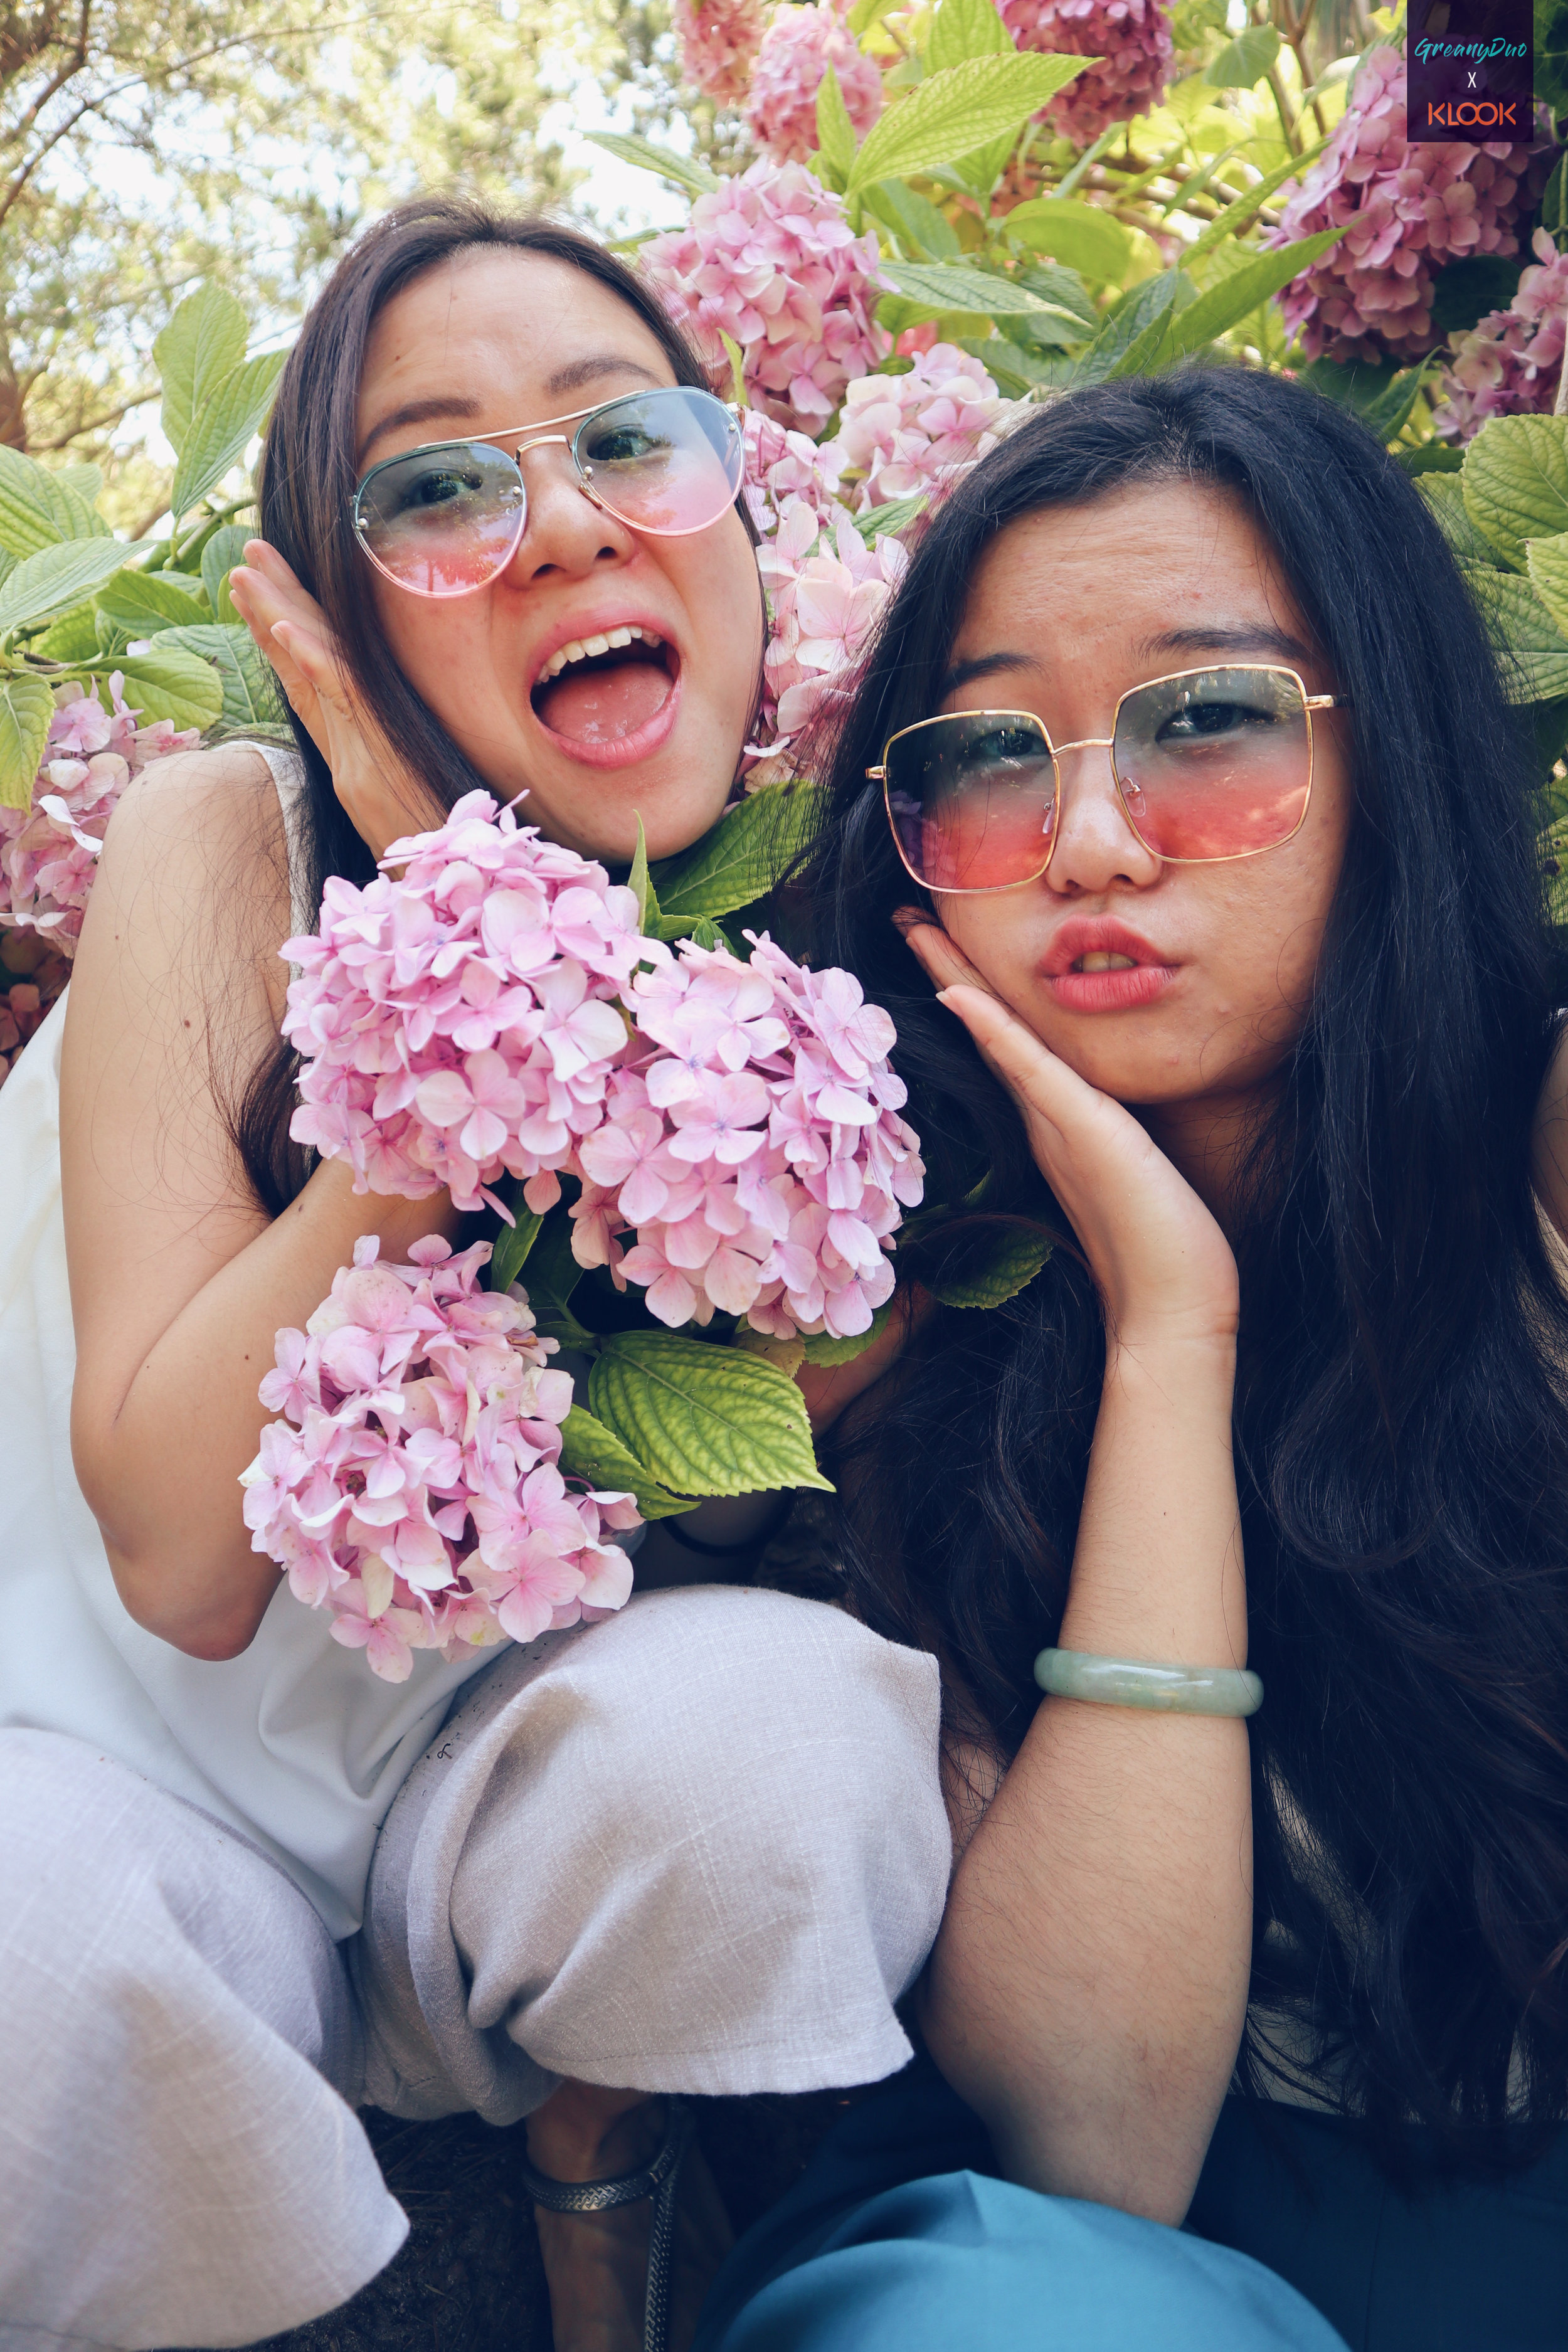 jenny and tina posting with hydrangea flower at hallim park, jeju with sunglasses